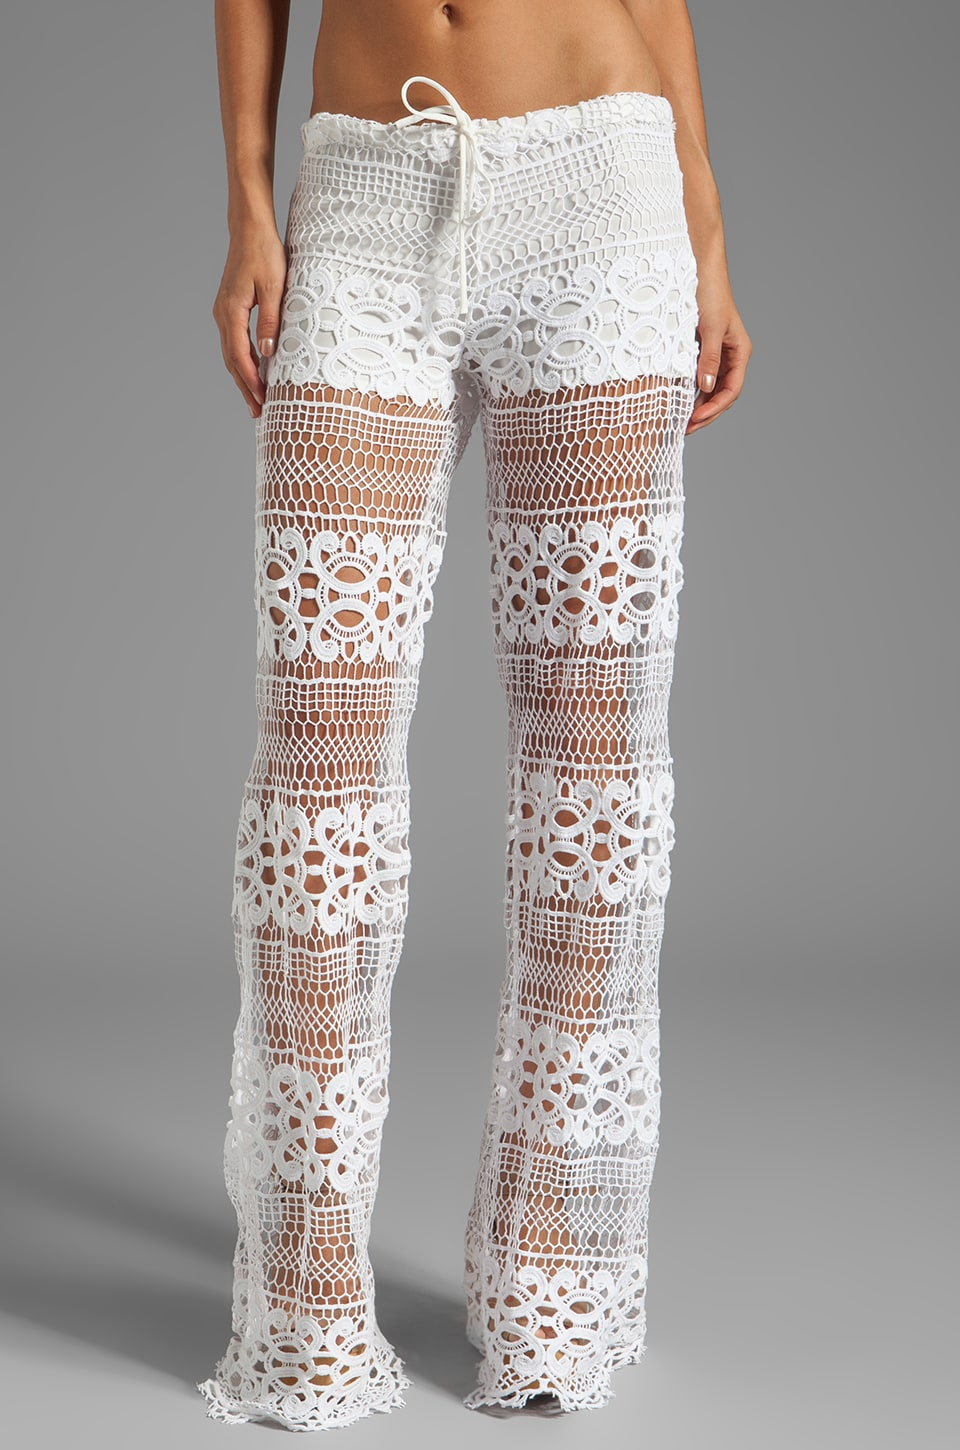 Alexis Michela Lace Pant With Drawstring in White Crochet